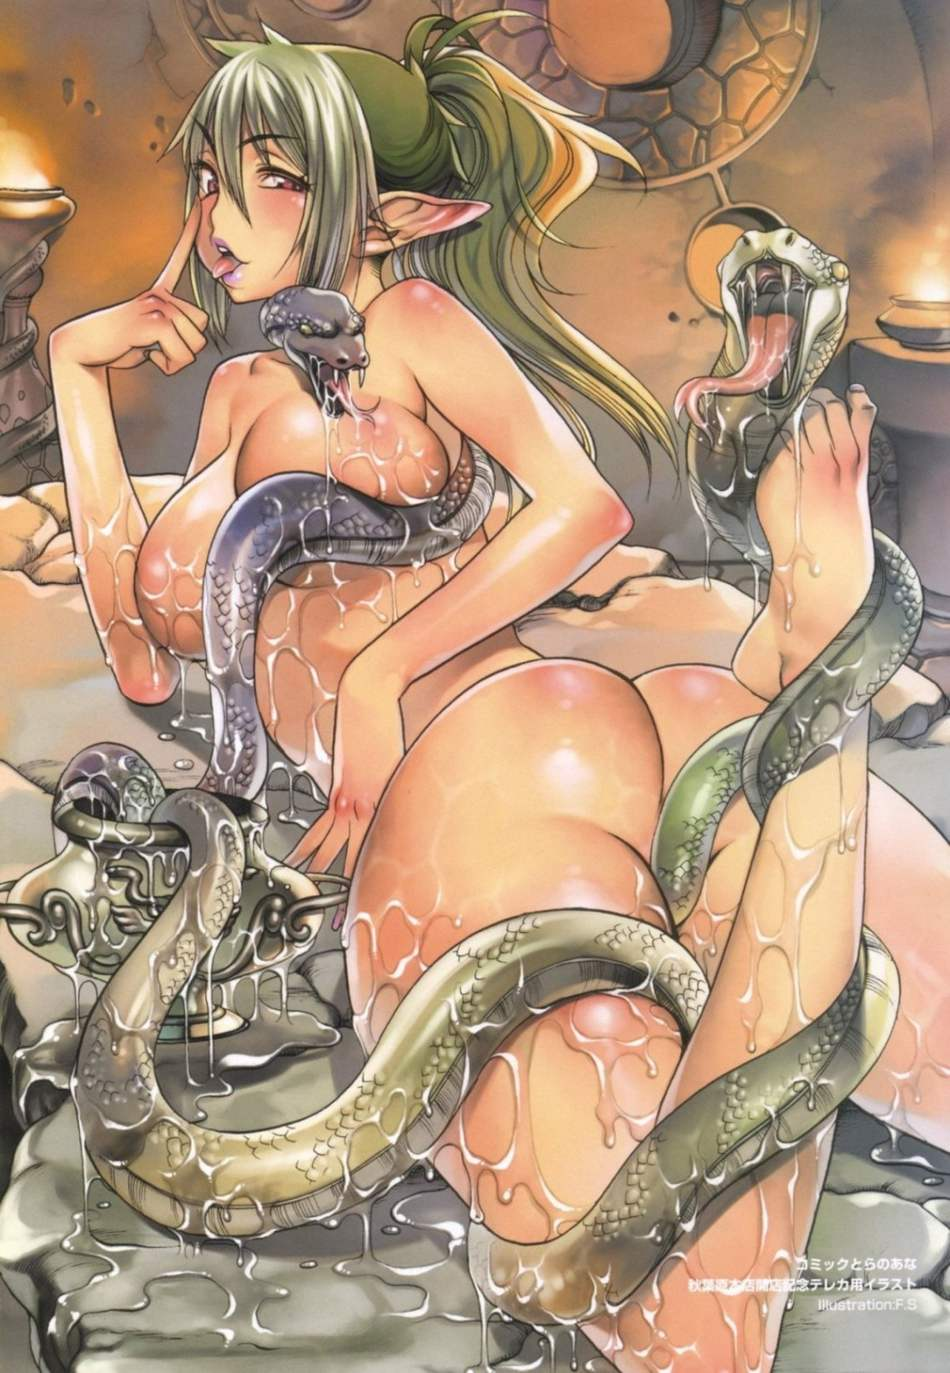 Nude girl 3d and snake porn movie